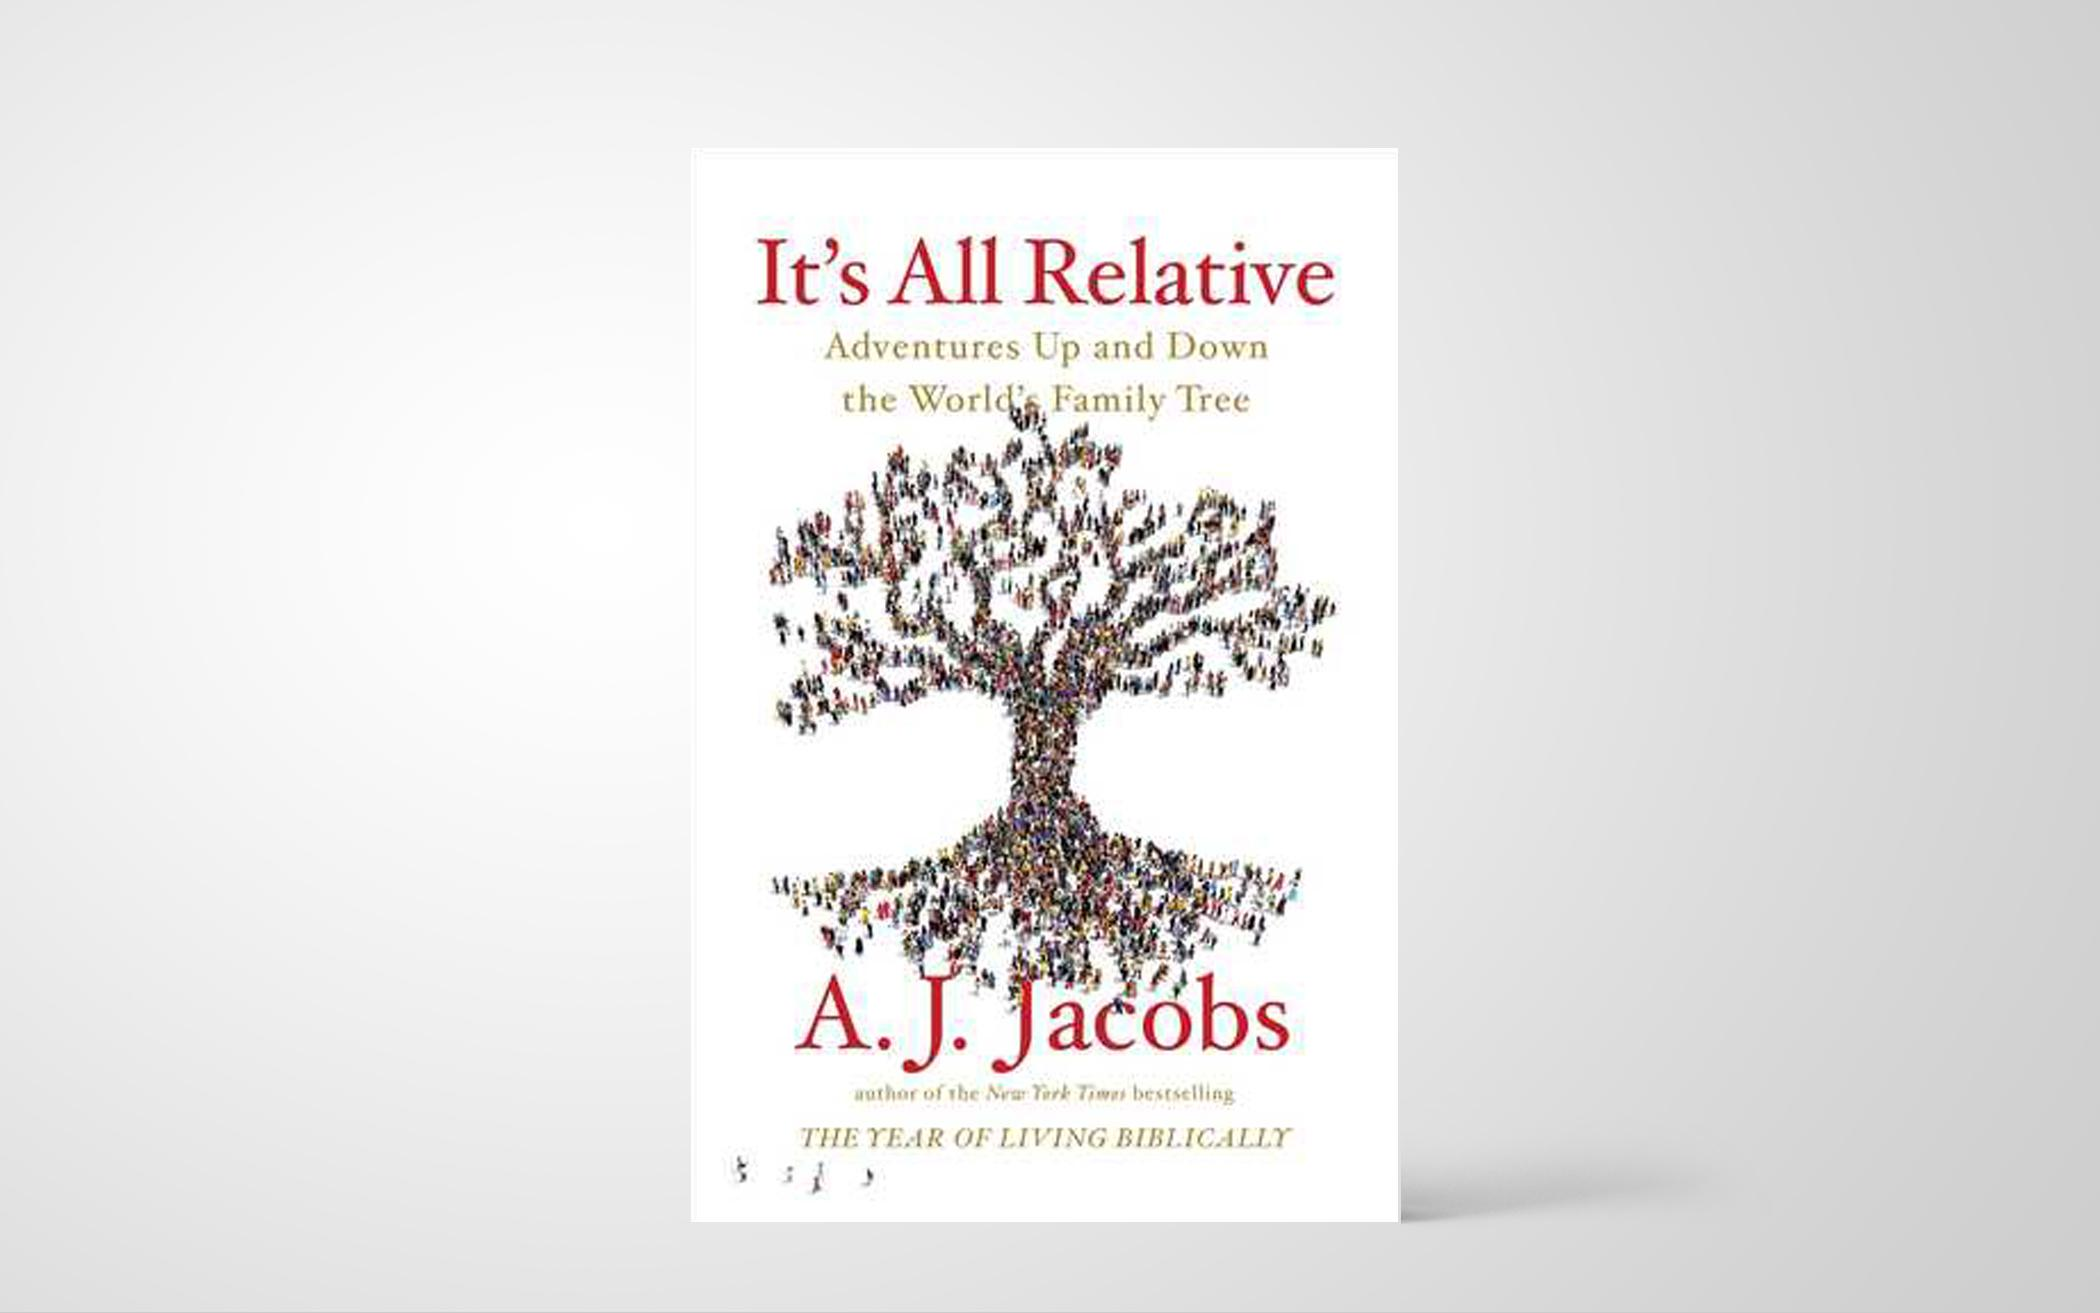 <p>For most of his life, author A. J. Jacobs &ldquo;figured humans were marching slowly but surely along a rational path. I figured we&rsquo;d eventually shed primitive tribalism and join forces to try to solve the world&rsquo;s big problems. Instead, we